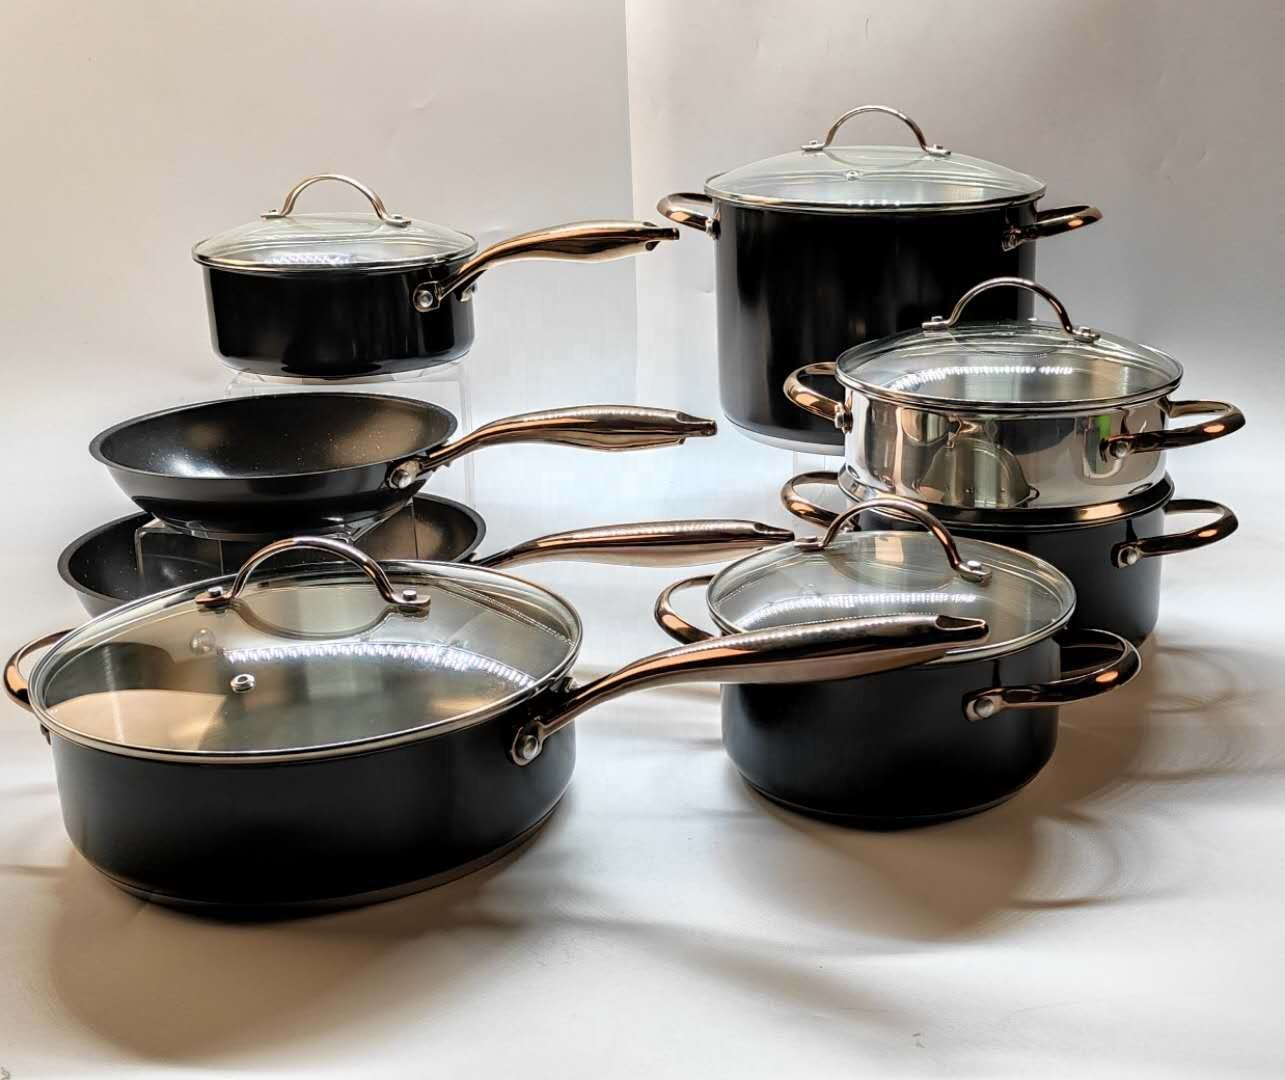 Stainless steel 304 PVD copper handle induction nonstick cookware sets 13pcs